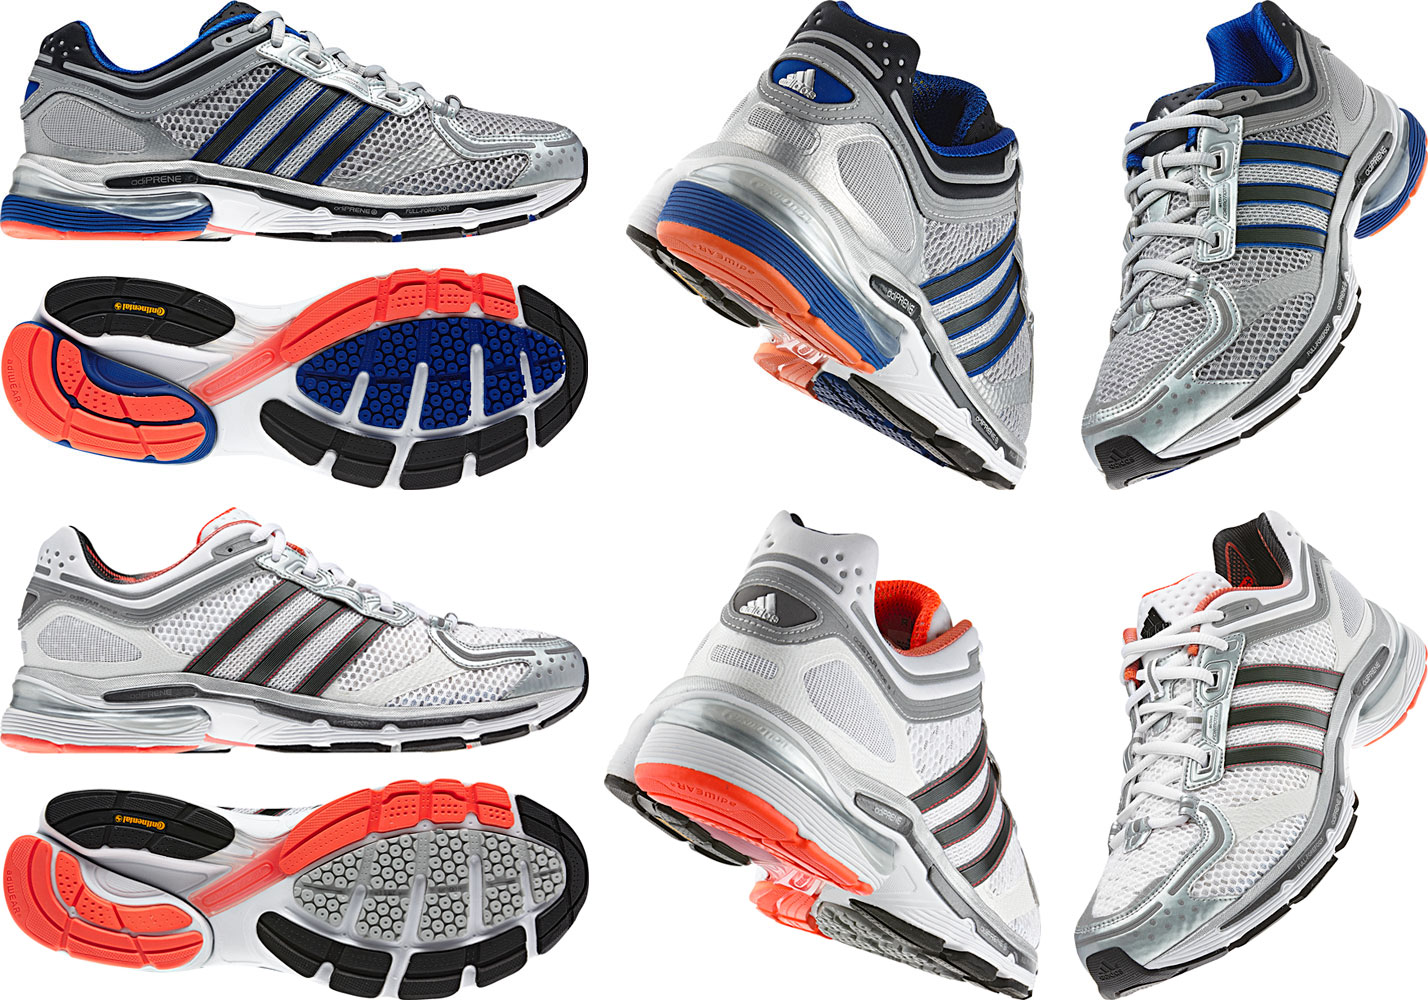 uk availability 371f1 45356 adidas adistar ride